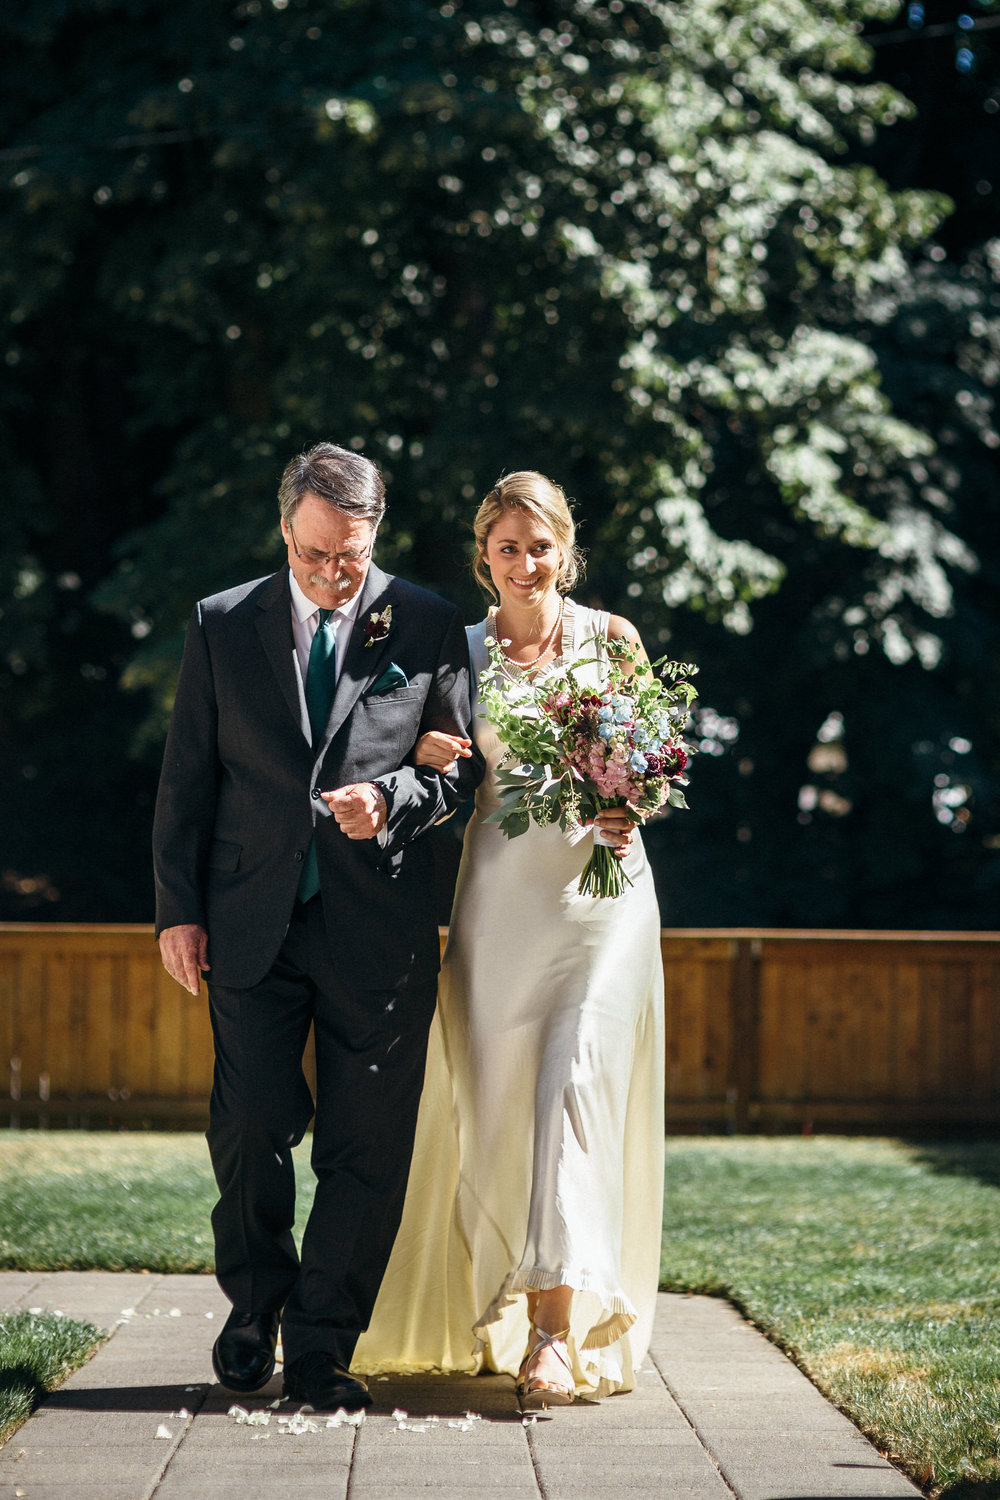 Laurelhurst Park club wedding photographer Portand pdx Oregon051.JPG